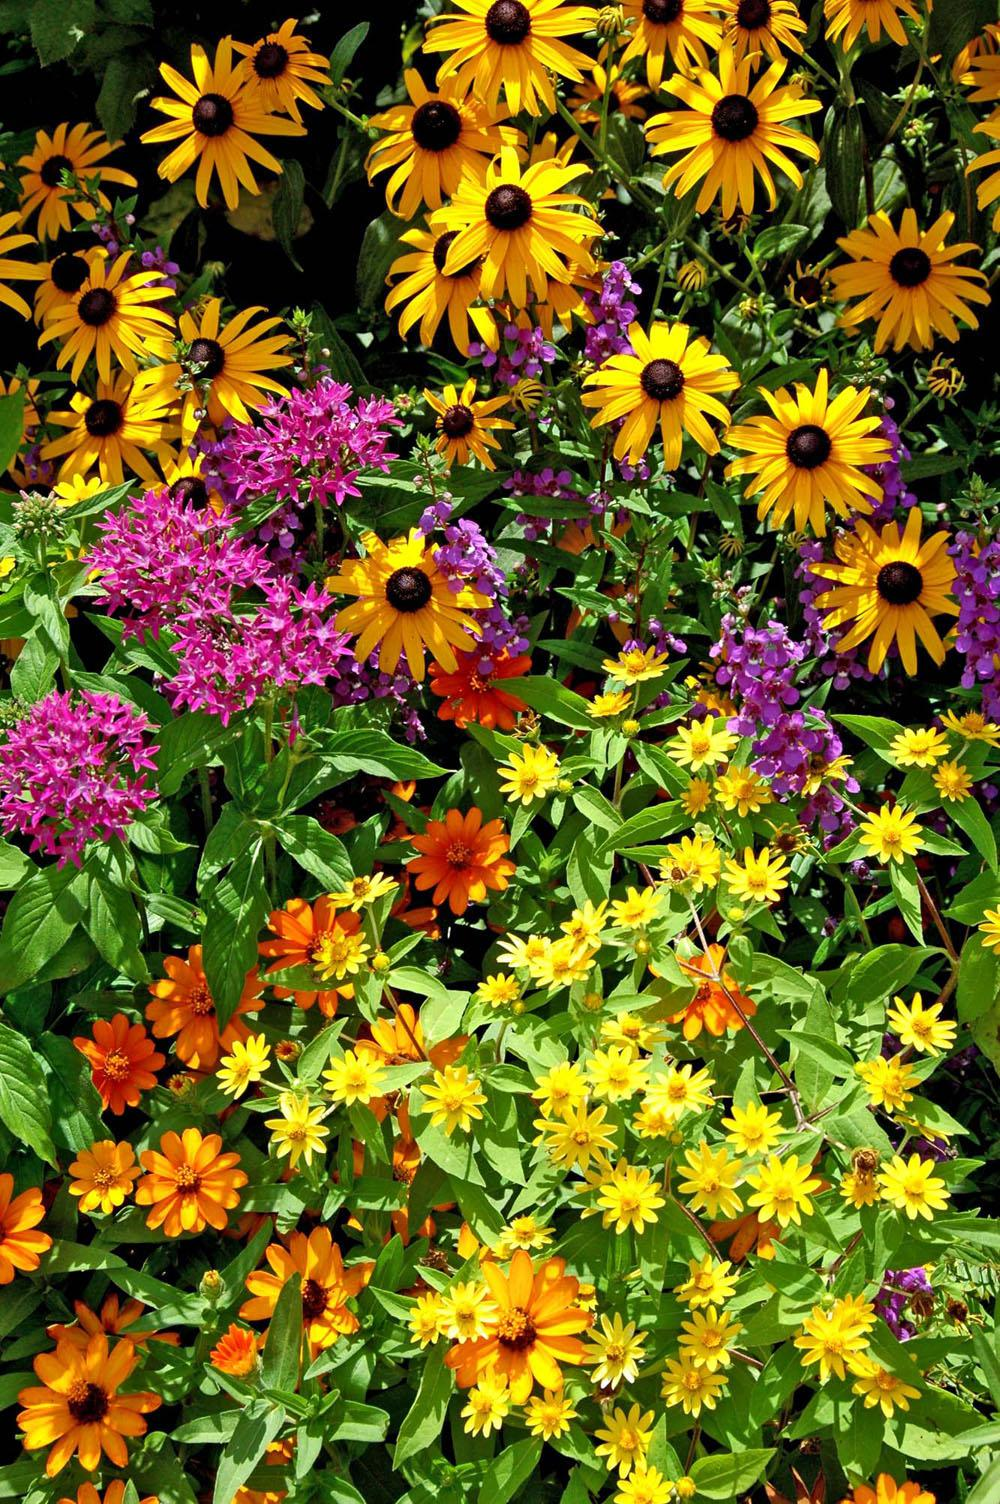 Yellows and golds from the melampodium and Goldsturm rudbeckia brighten this garden that also includes lavender pink pentas, angelonia and Profusion orange zinnia.